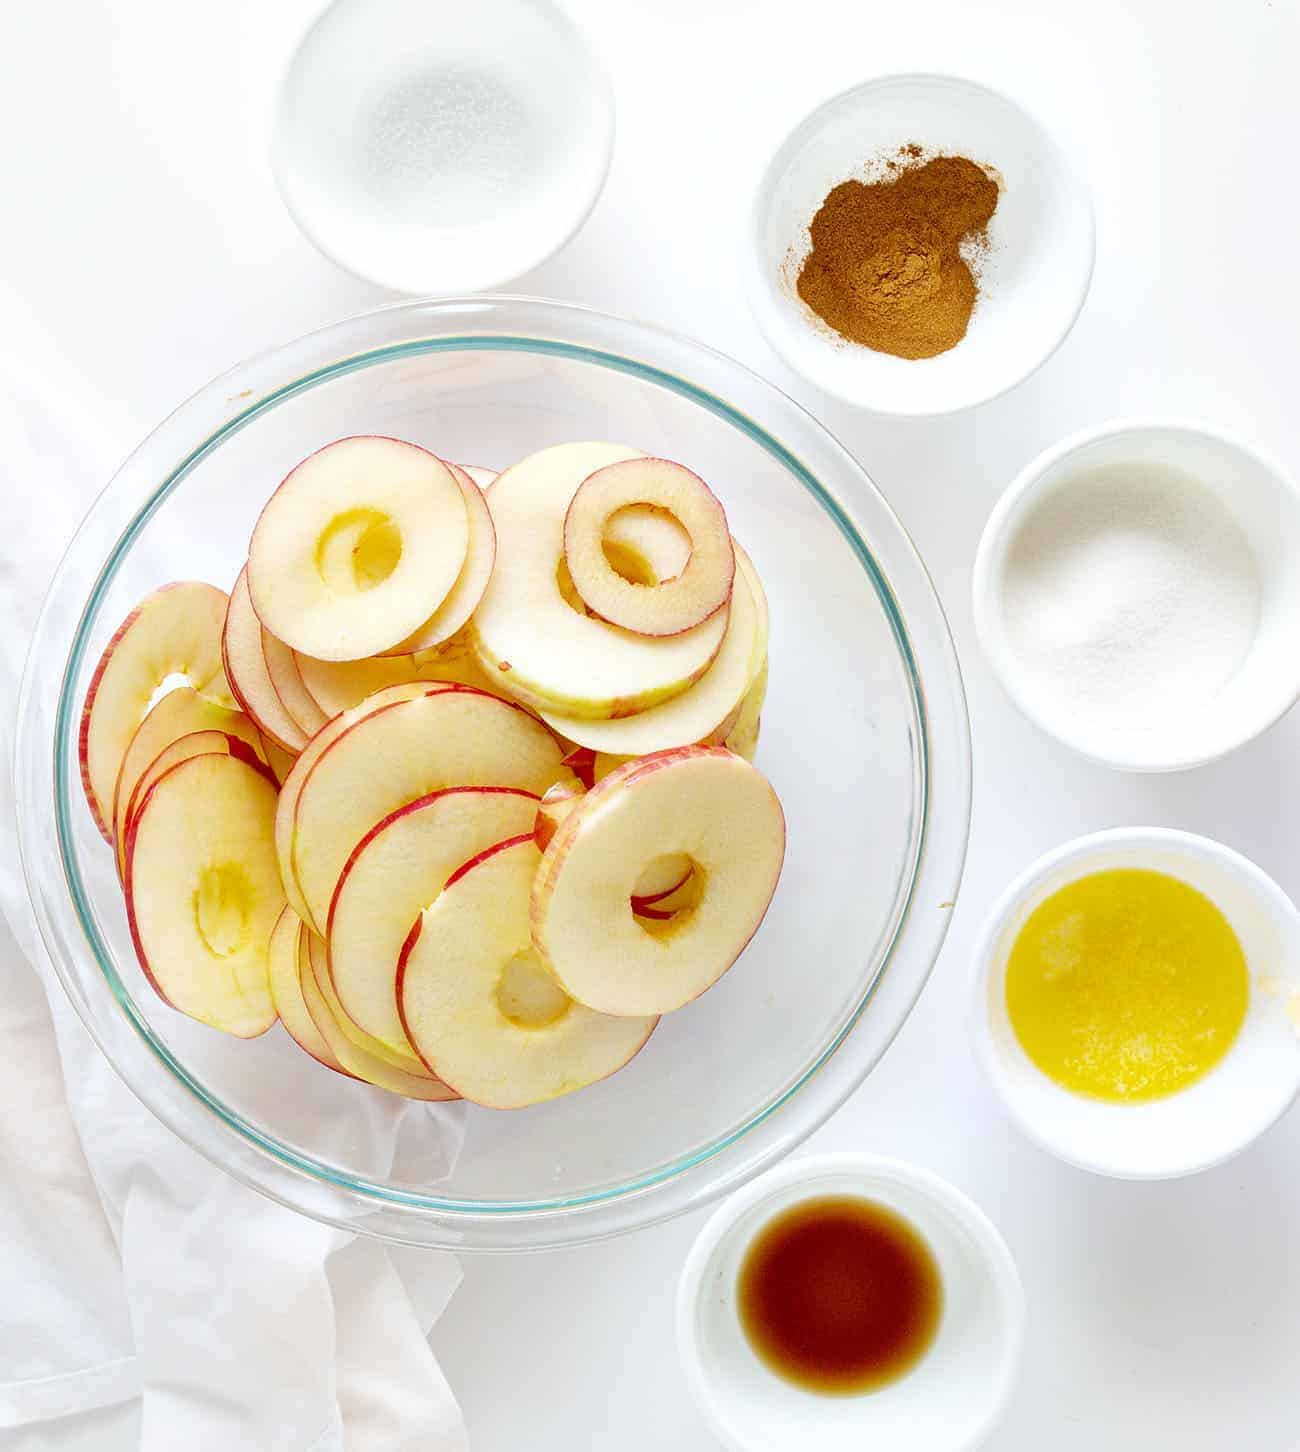 Ingredients for Homemade Apple Galette